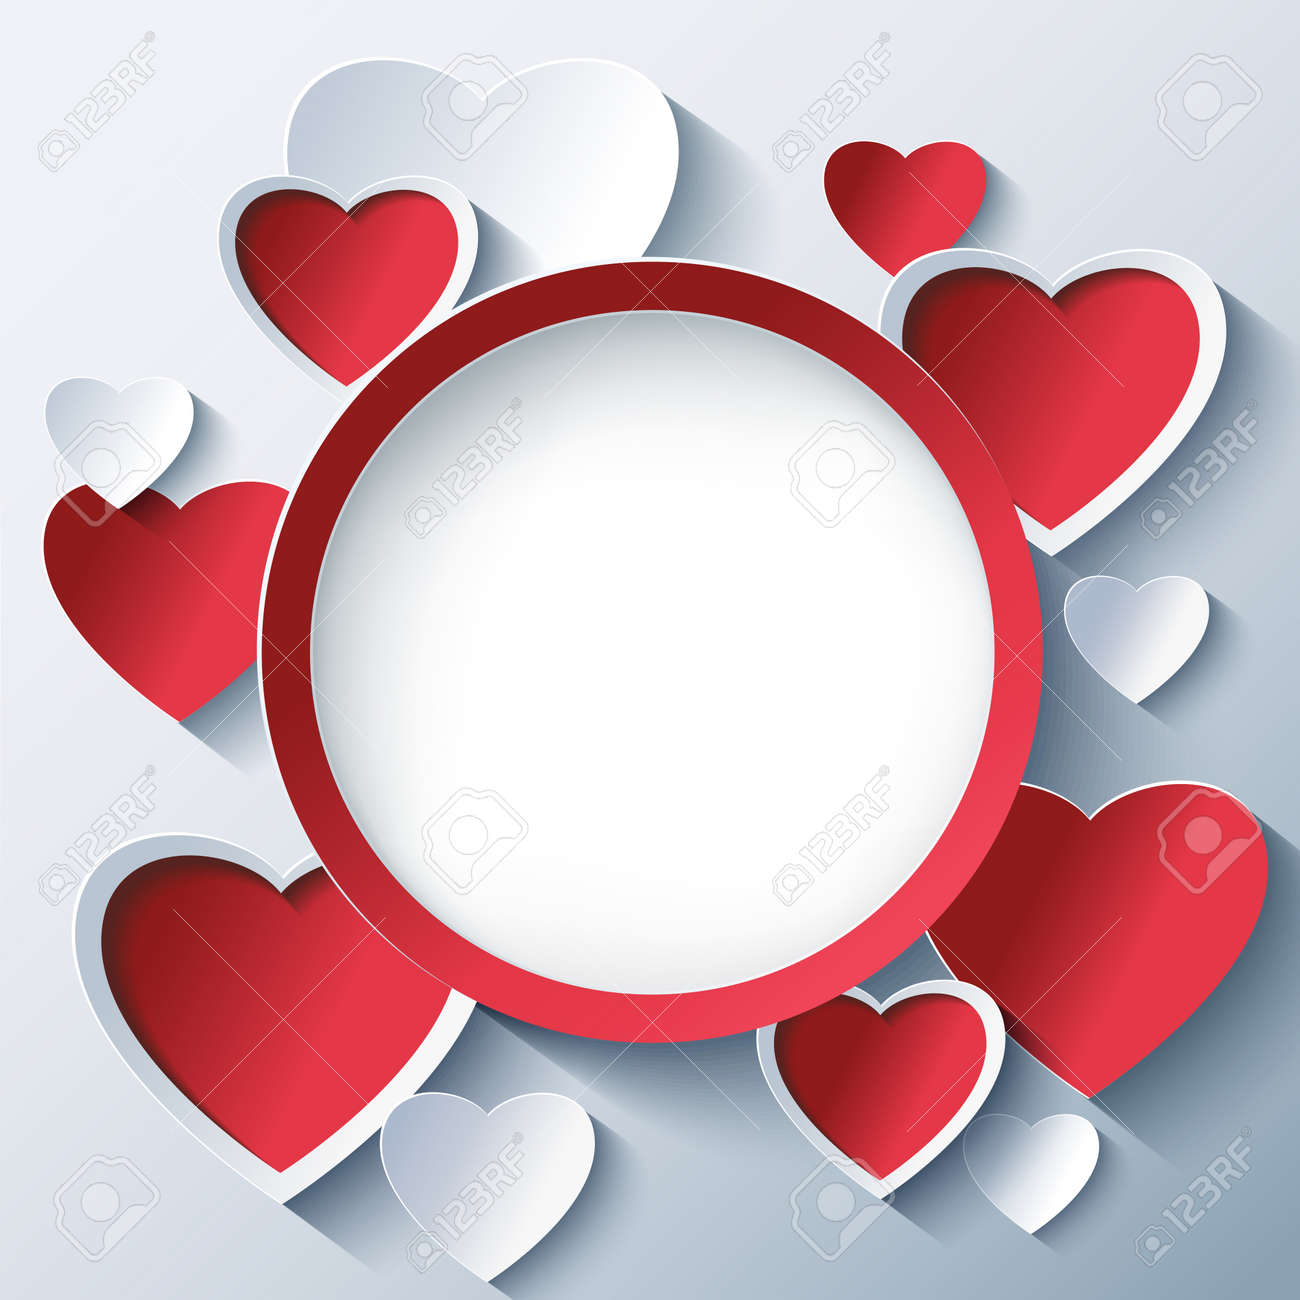 Stylish Creative Abstract Background With Red And White 3d Hearts. Valentines  Day Frame With Stylized